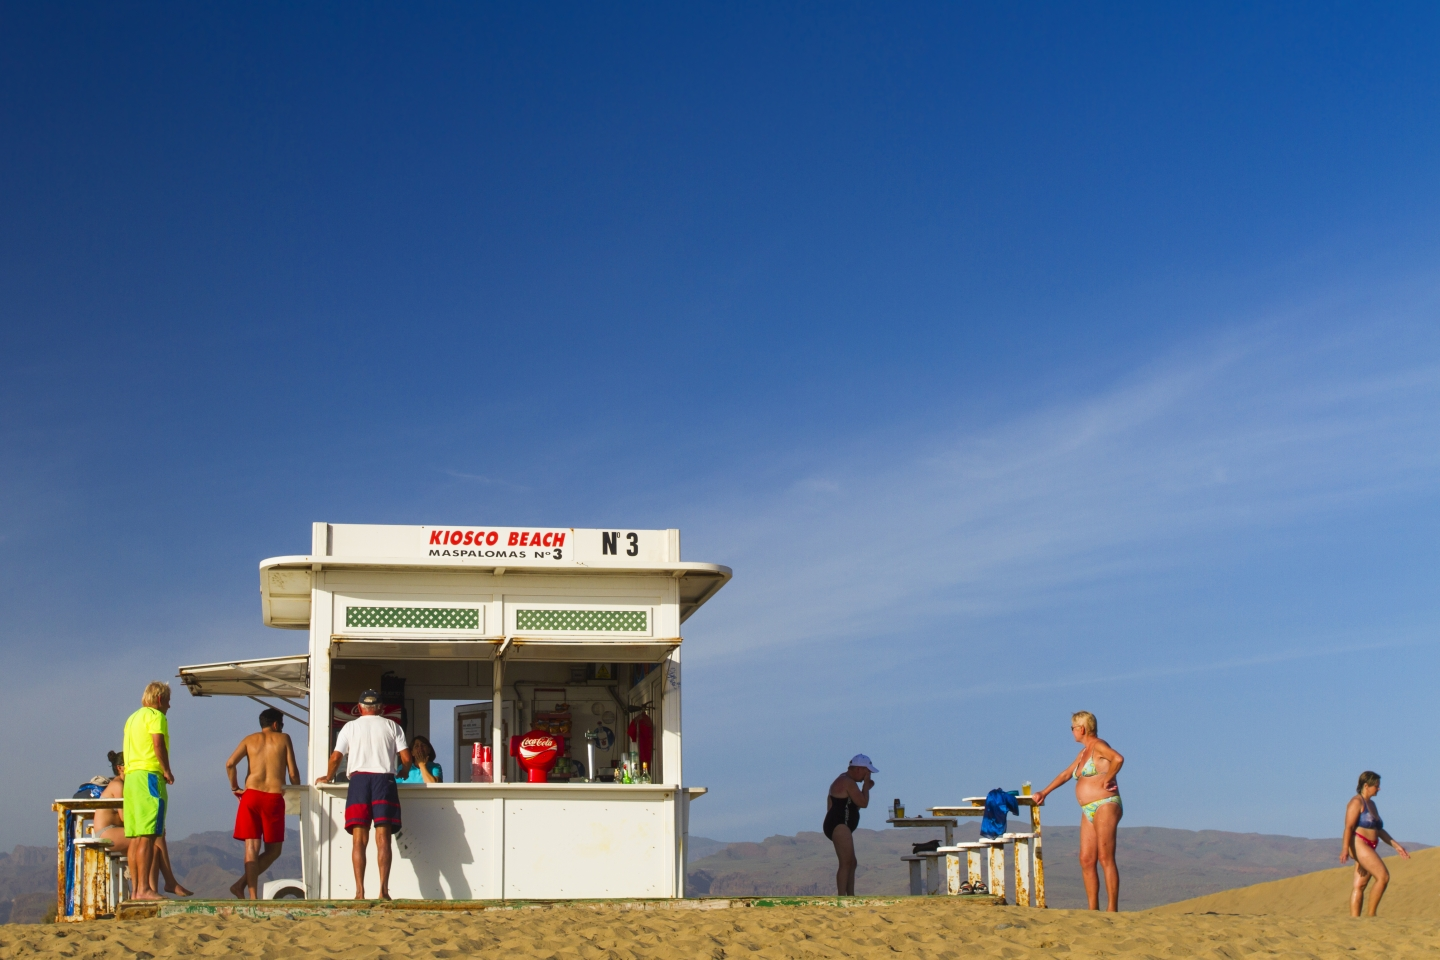 nudist kiosk at Maspalomas beach